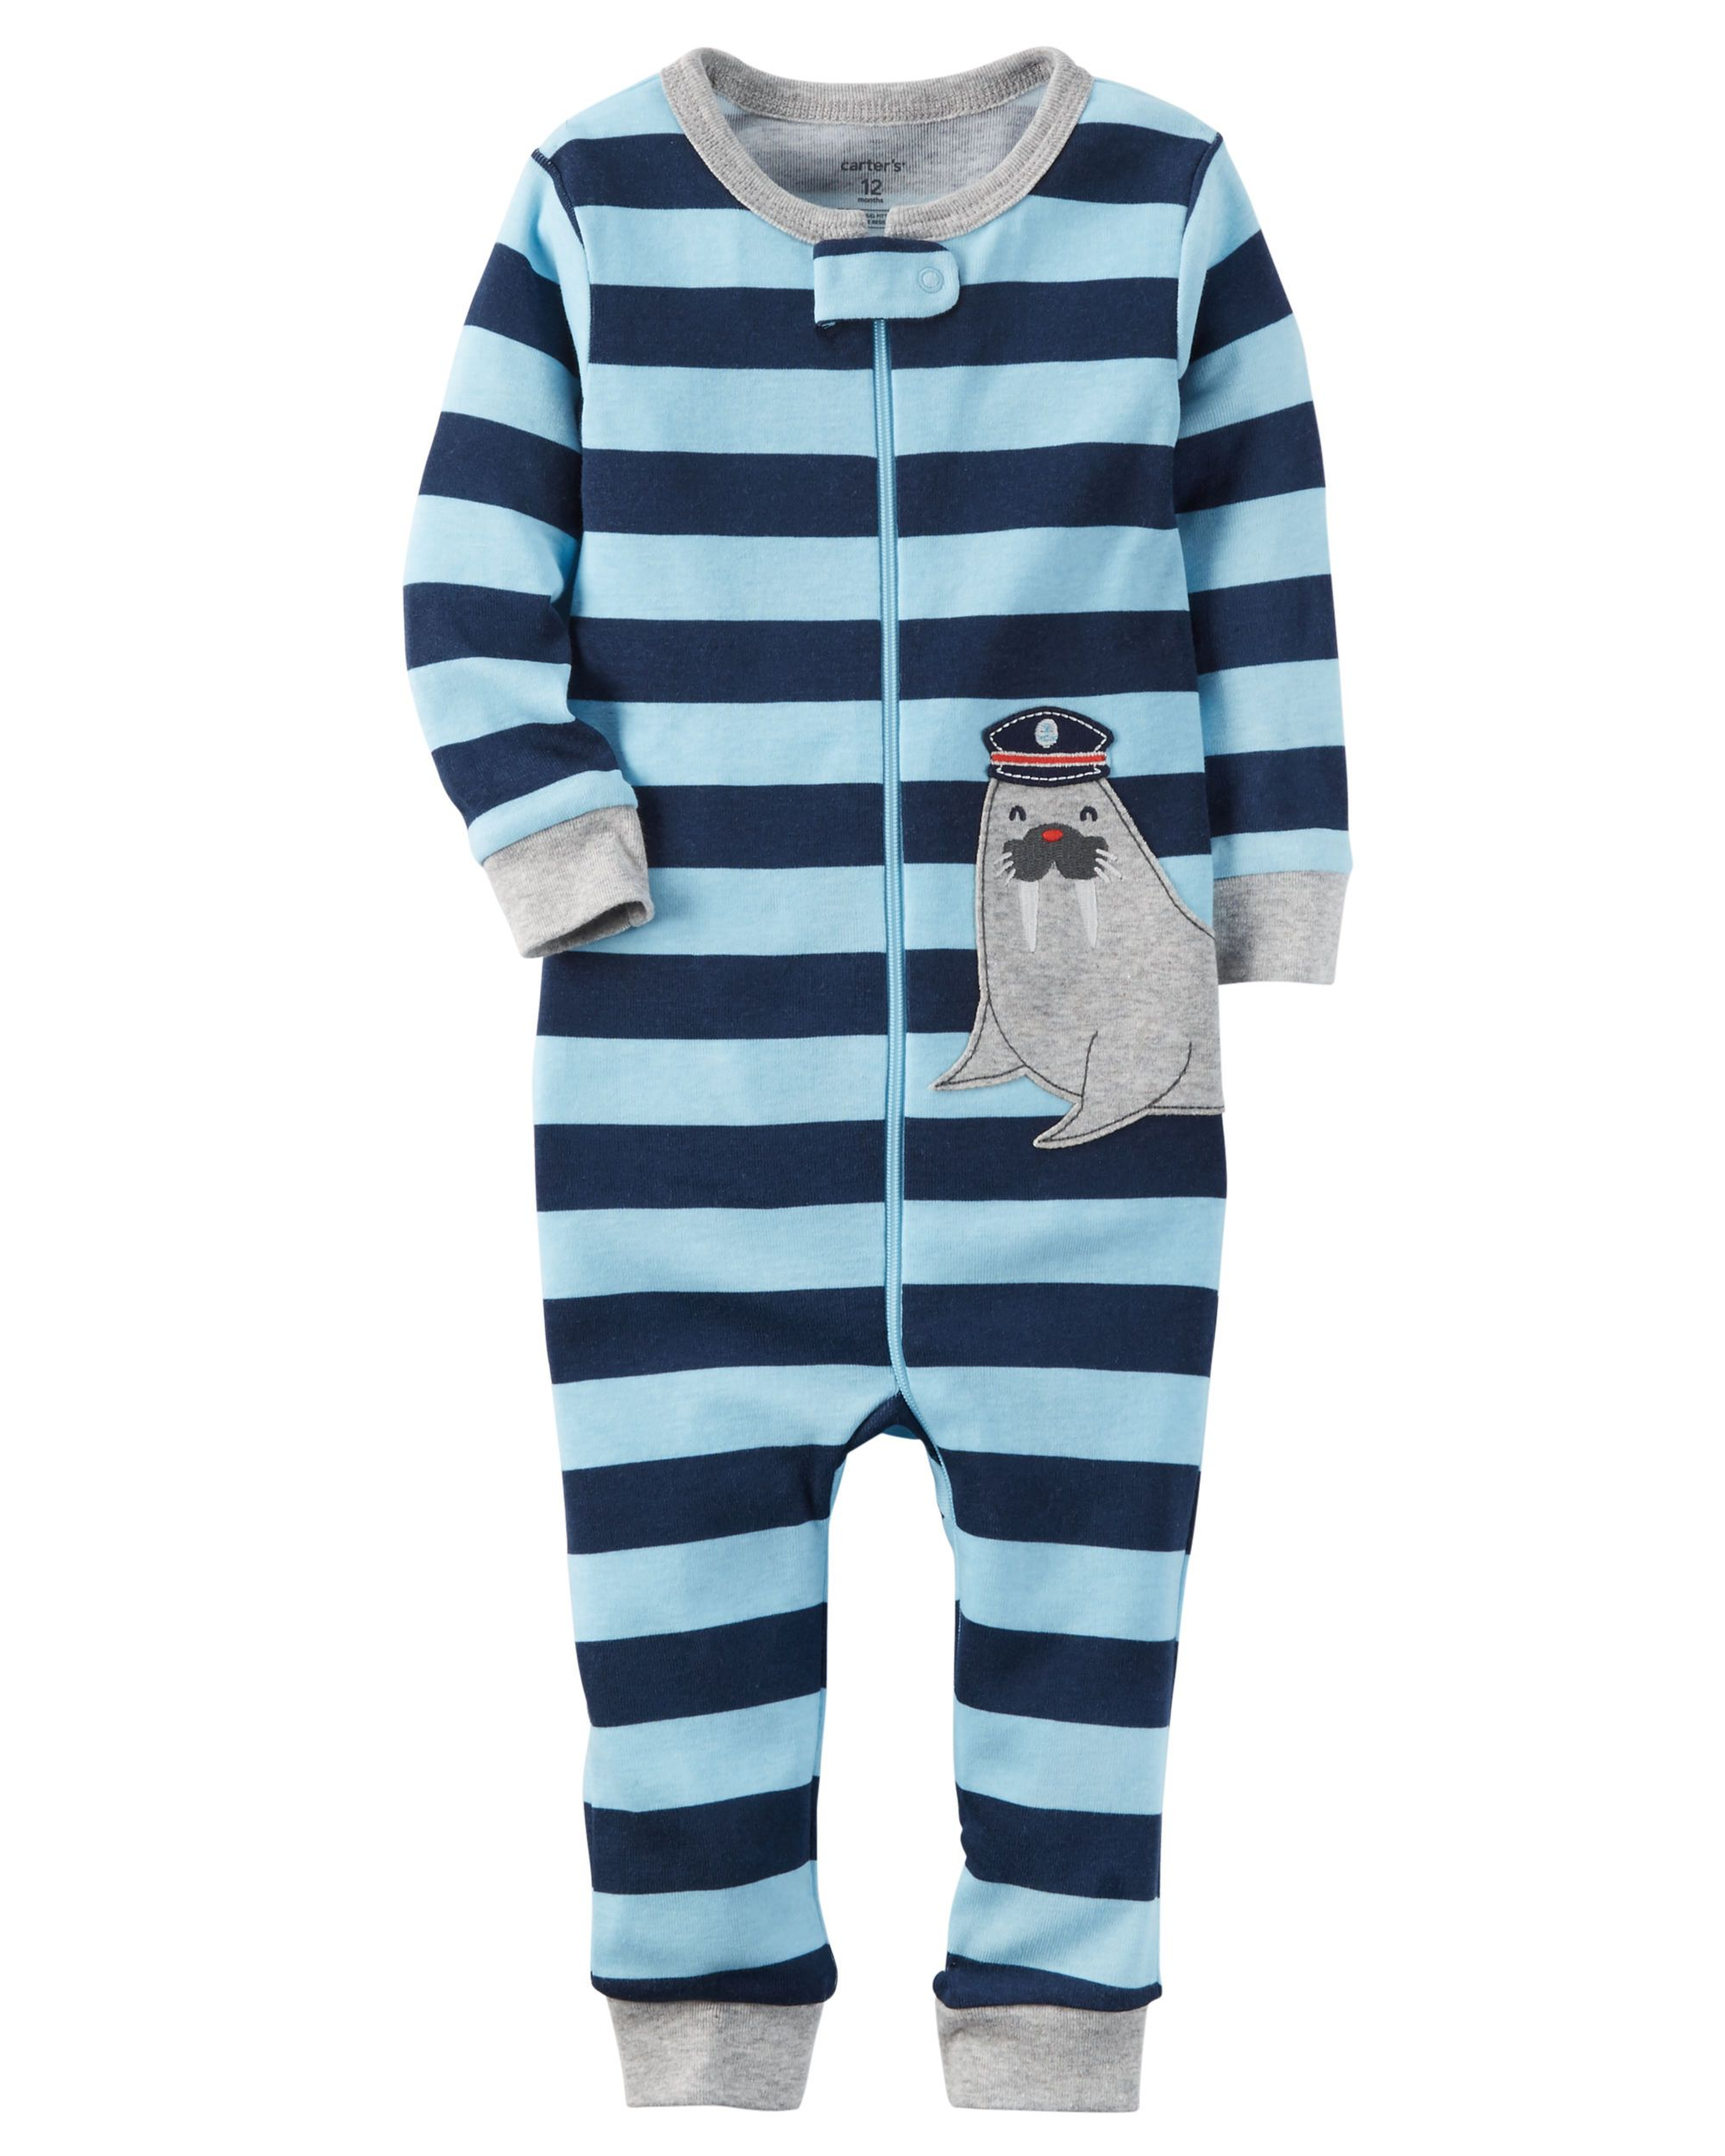 763f733d2 1-Piece Snug Fit Cotton Footless PJs